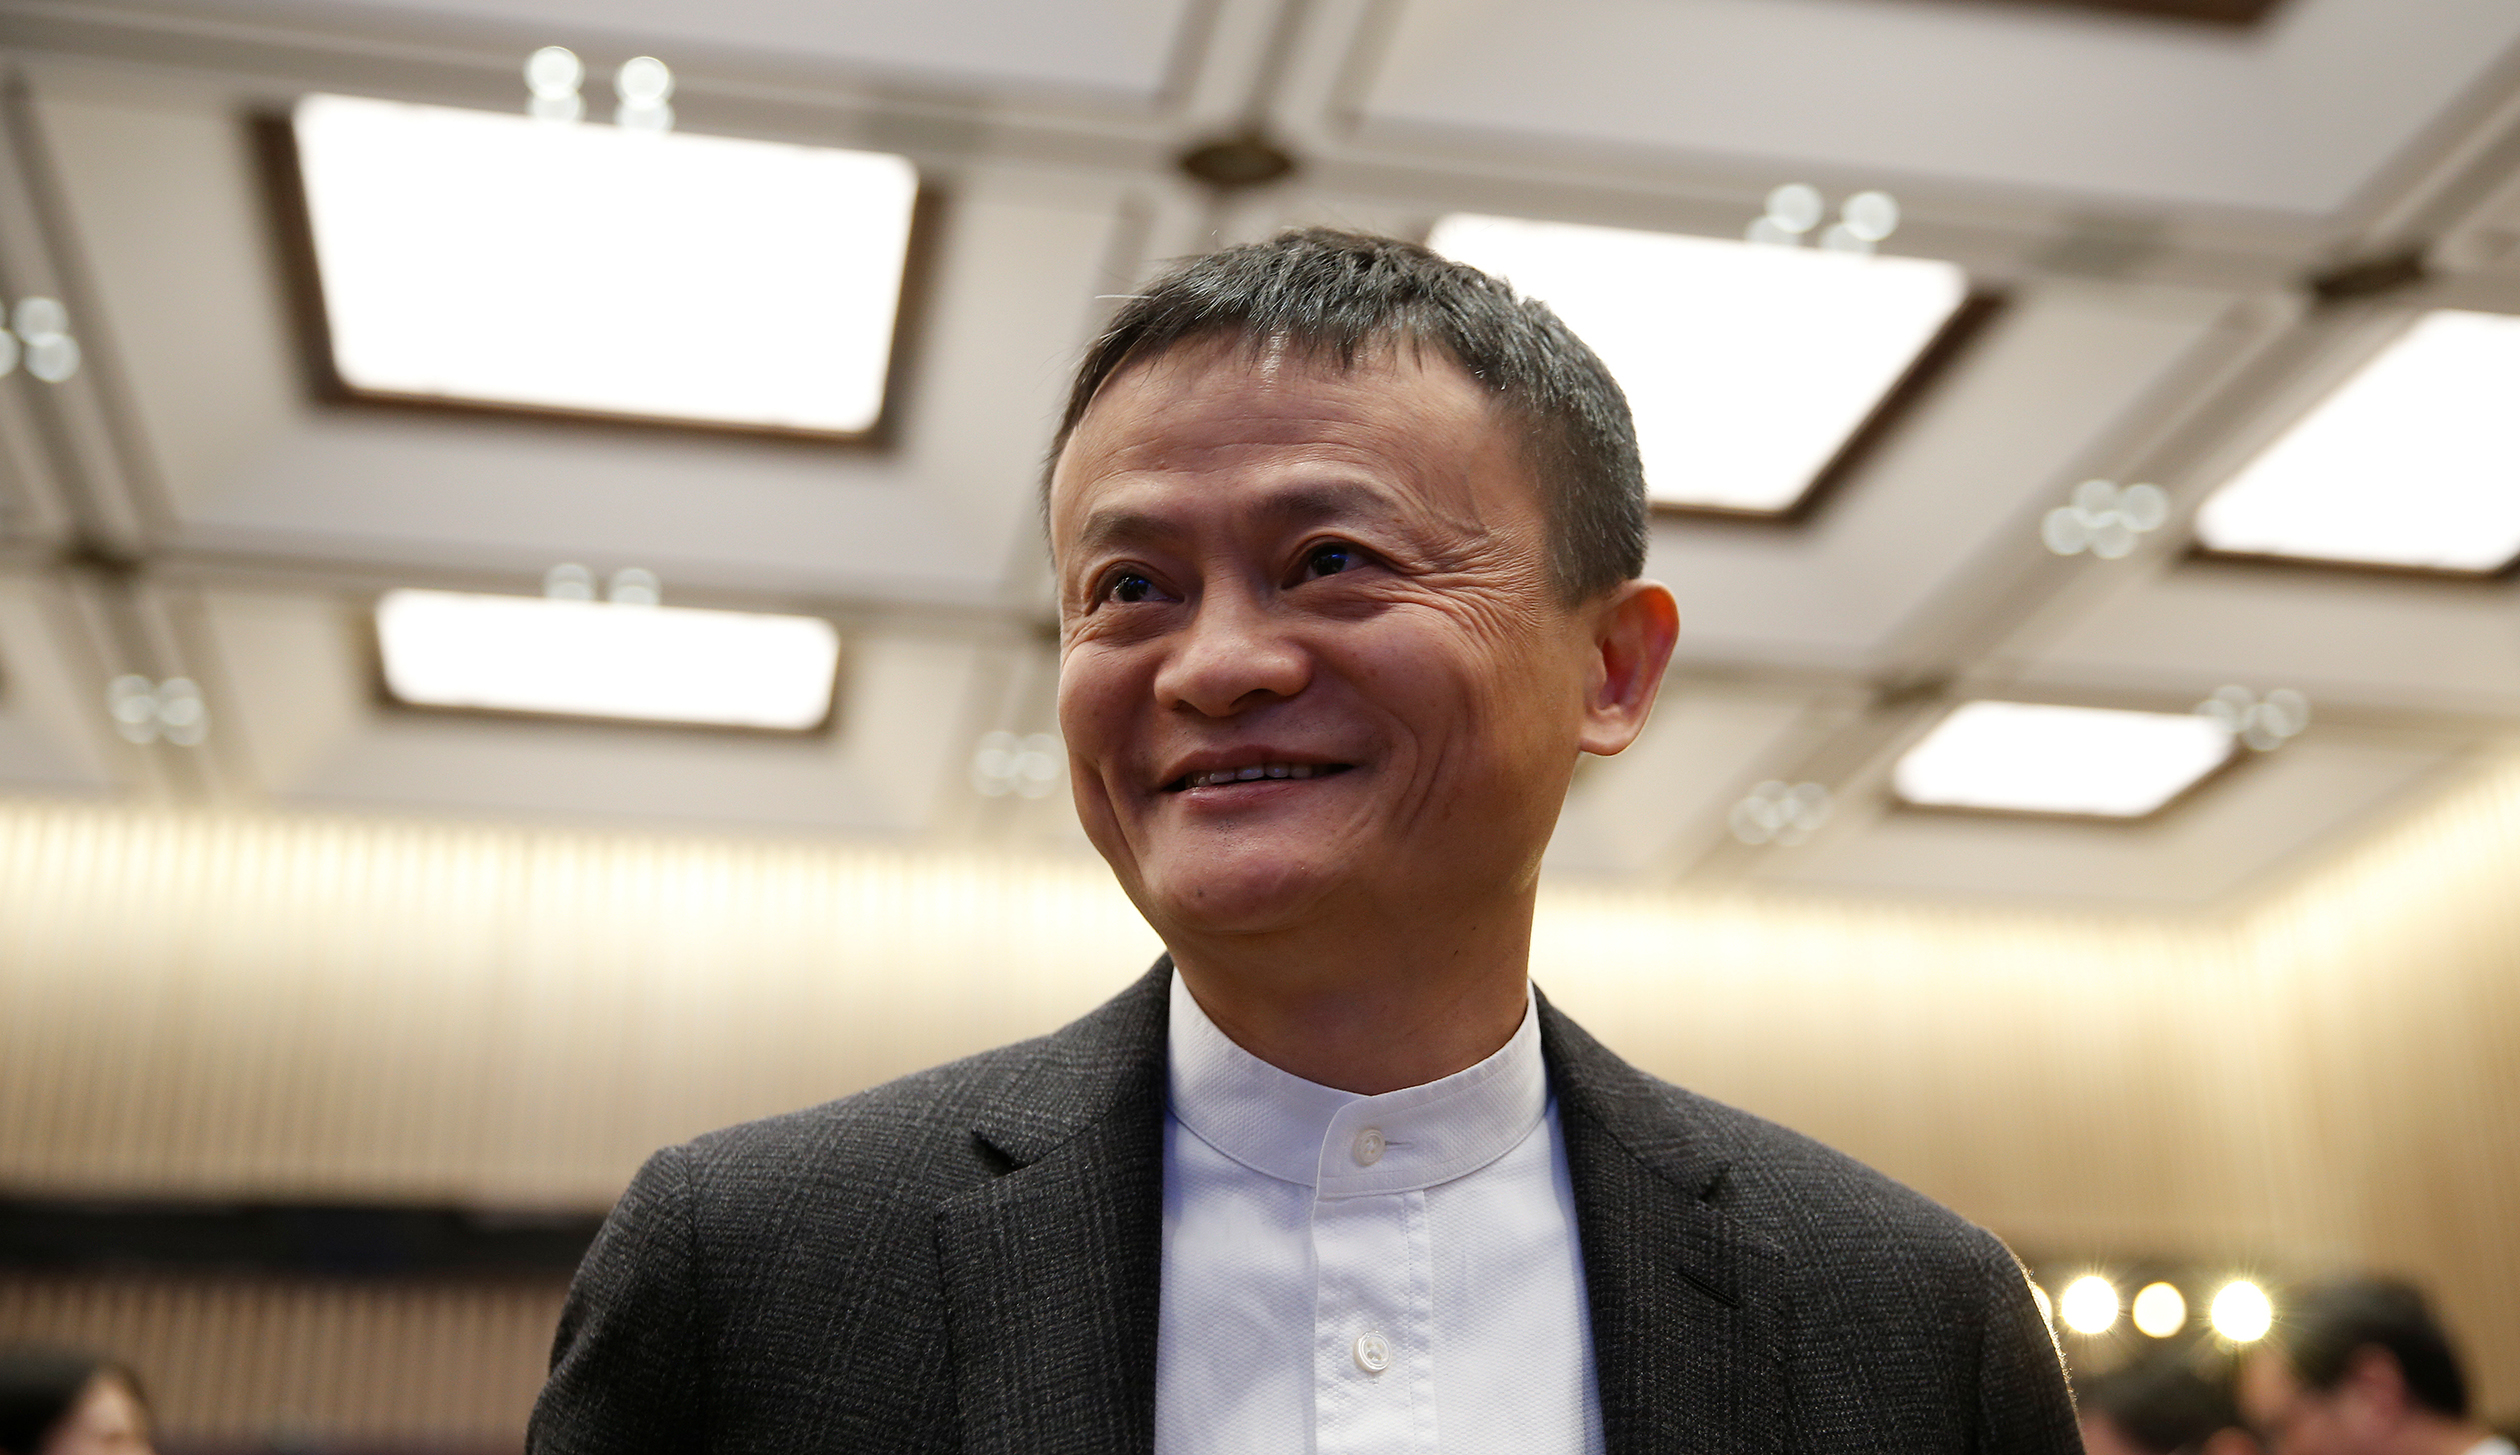 Founder and Executive Chairman of Alibaba Group Jack Ma attends the opening ceremony of the third annual World Internet Conference in Wuzhen town of Jiaxing